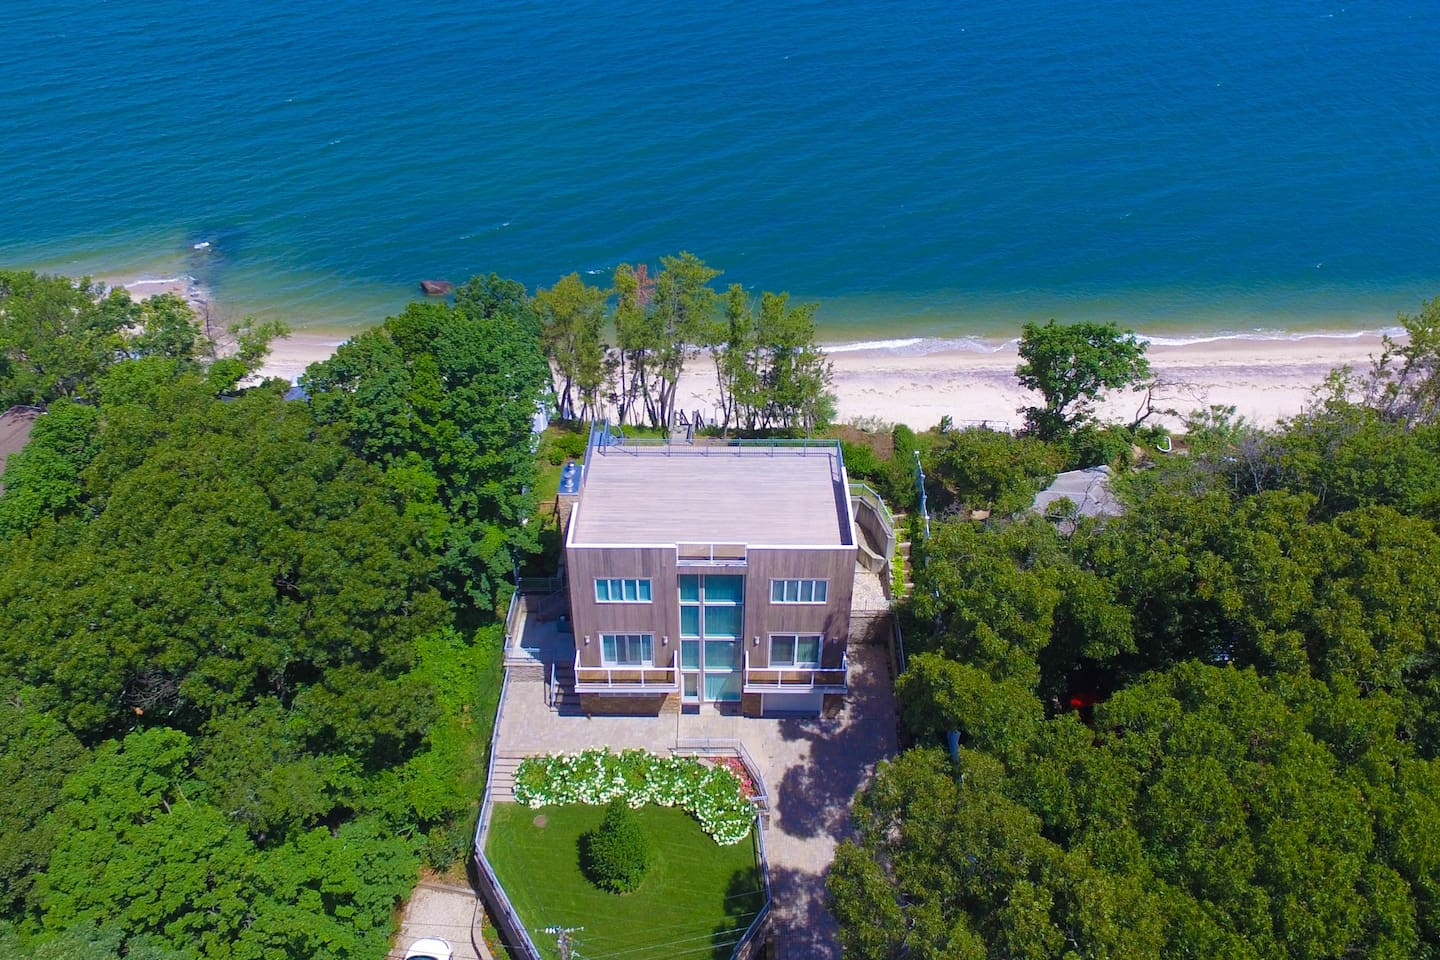 Bird eye view of our waterfront beach home with Private Beach access